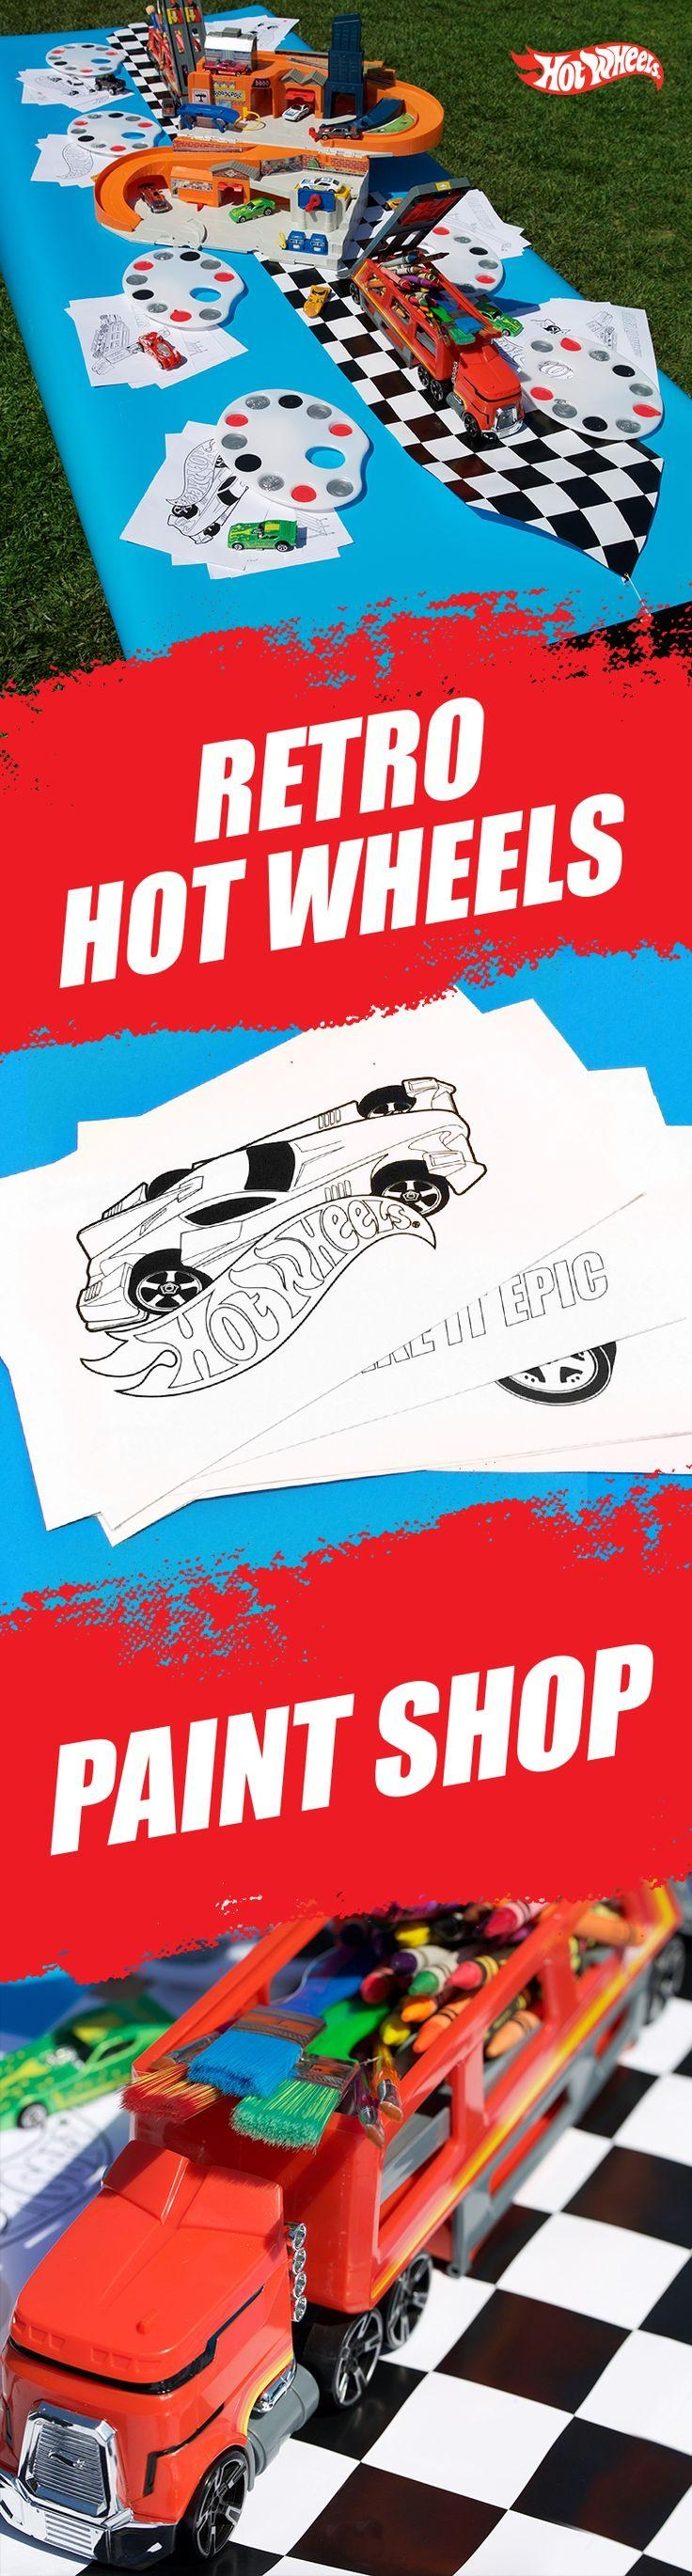 200 Best Fast, Fun Arts & Crafts Images On Pinterest | Kids Crafts Pertaining To Hot Wheels Wall Art (View 20 of 20)